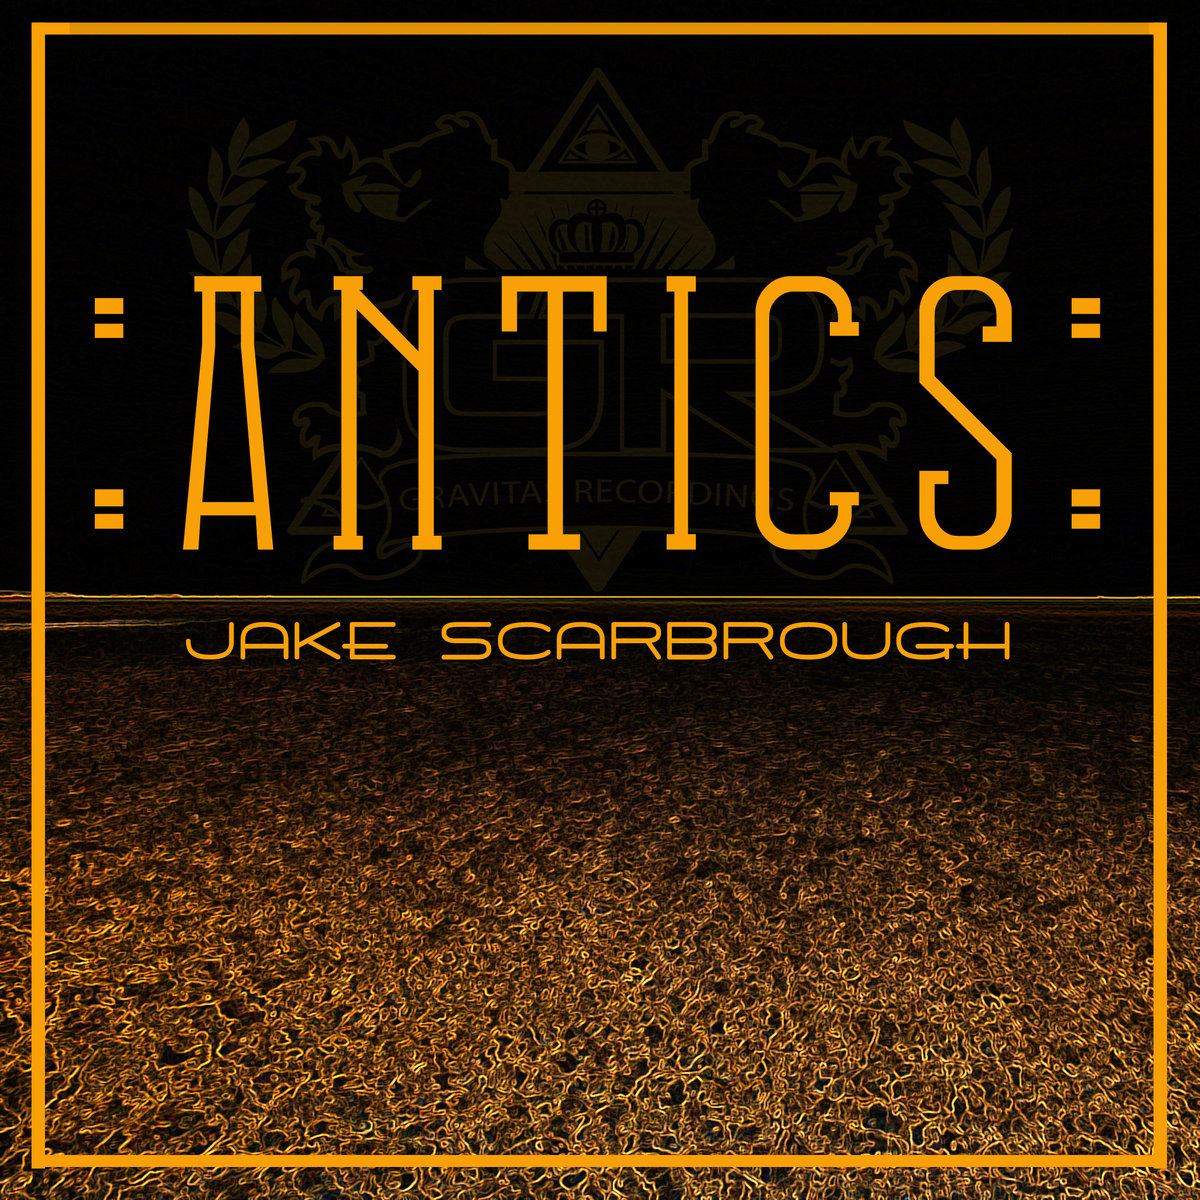 Jake Scarbrough - Supperfunk @ 'Antics' album (Austin)